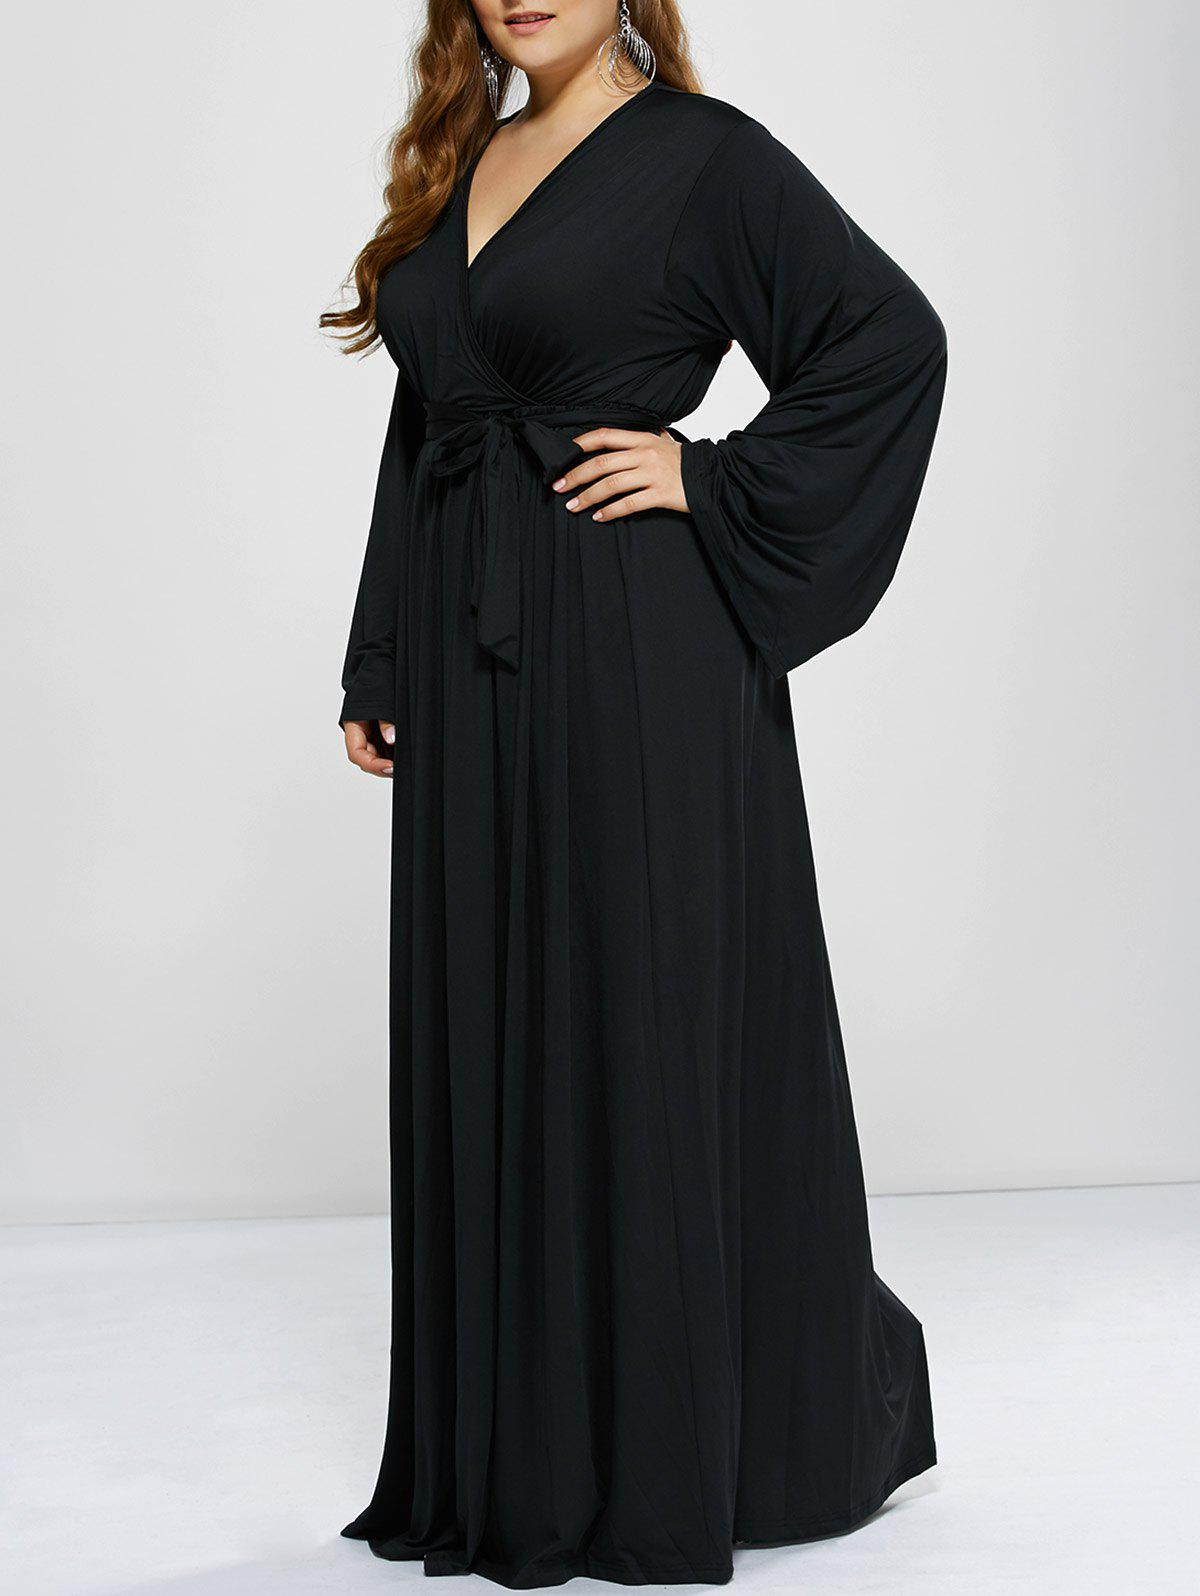 Plus Size Long Sleeve Modest Maxi Formal Dress - BLACK 3XL